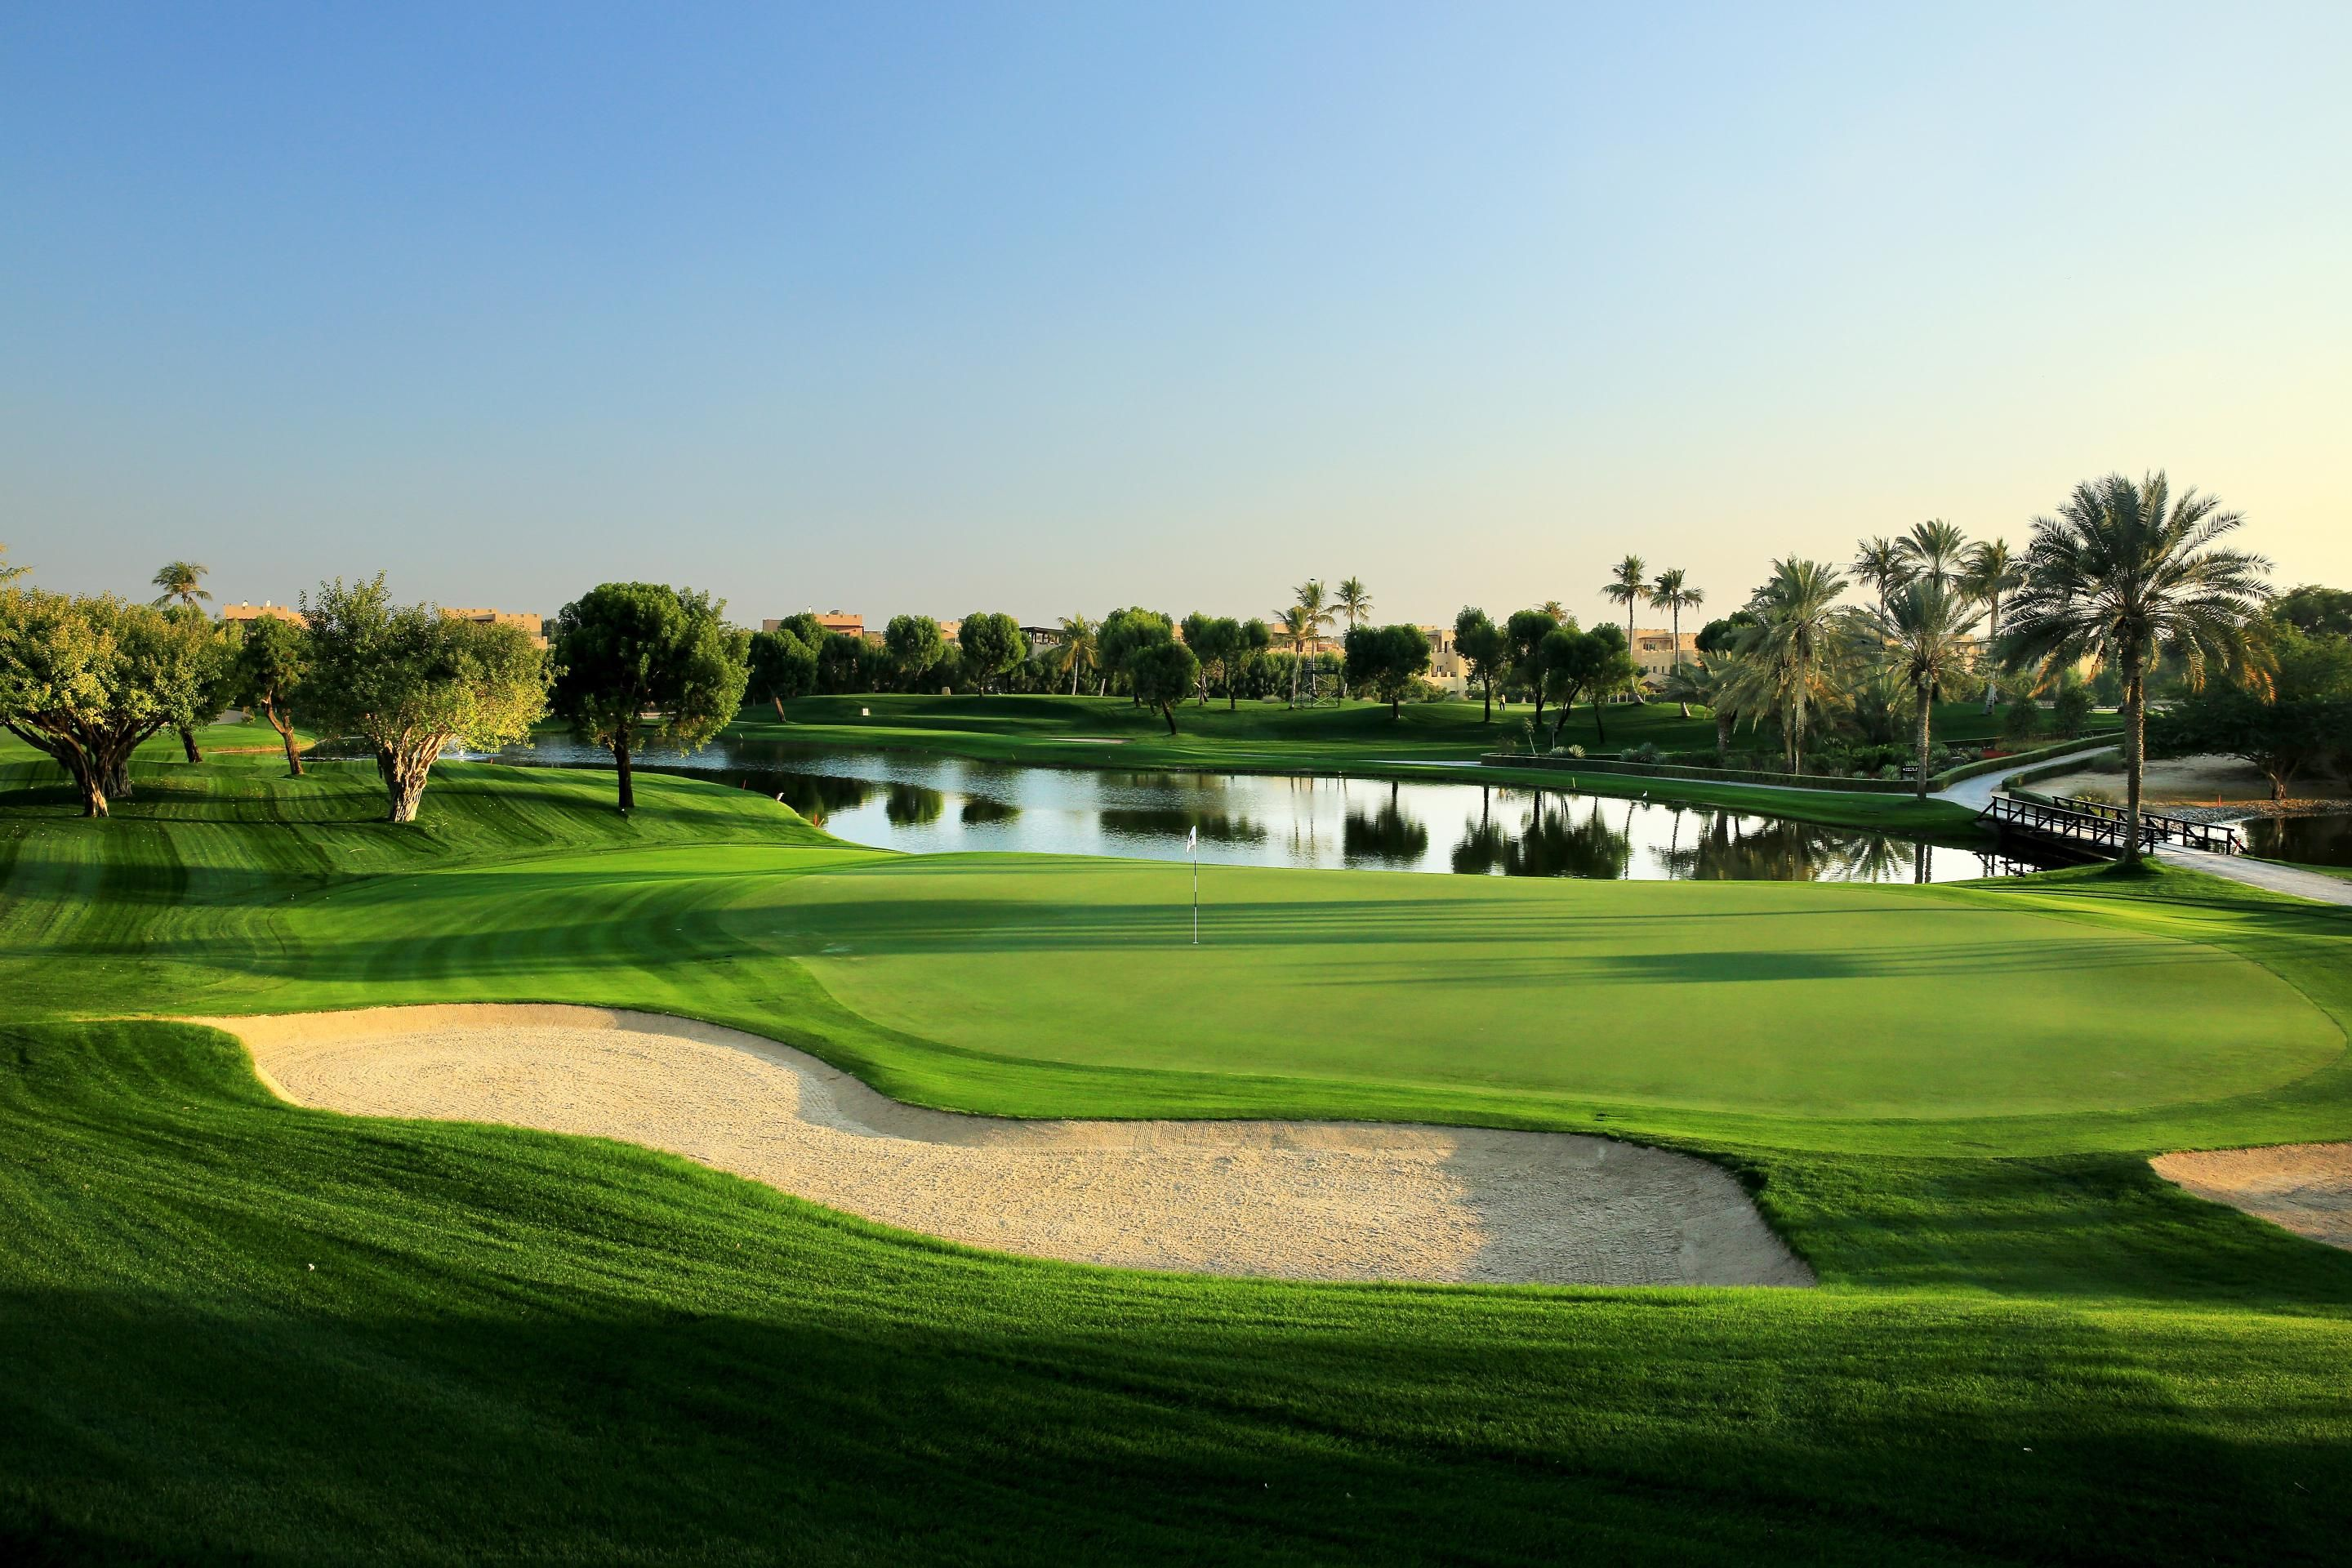 7th hole on the Majlis golf course at Emirates Golf Club